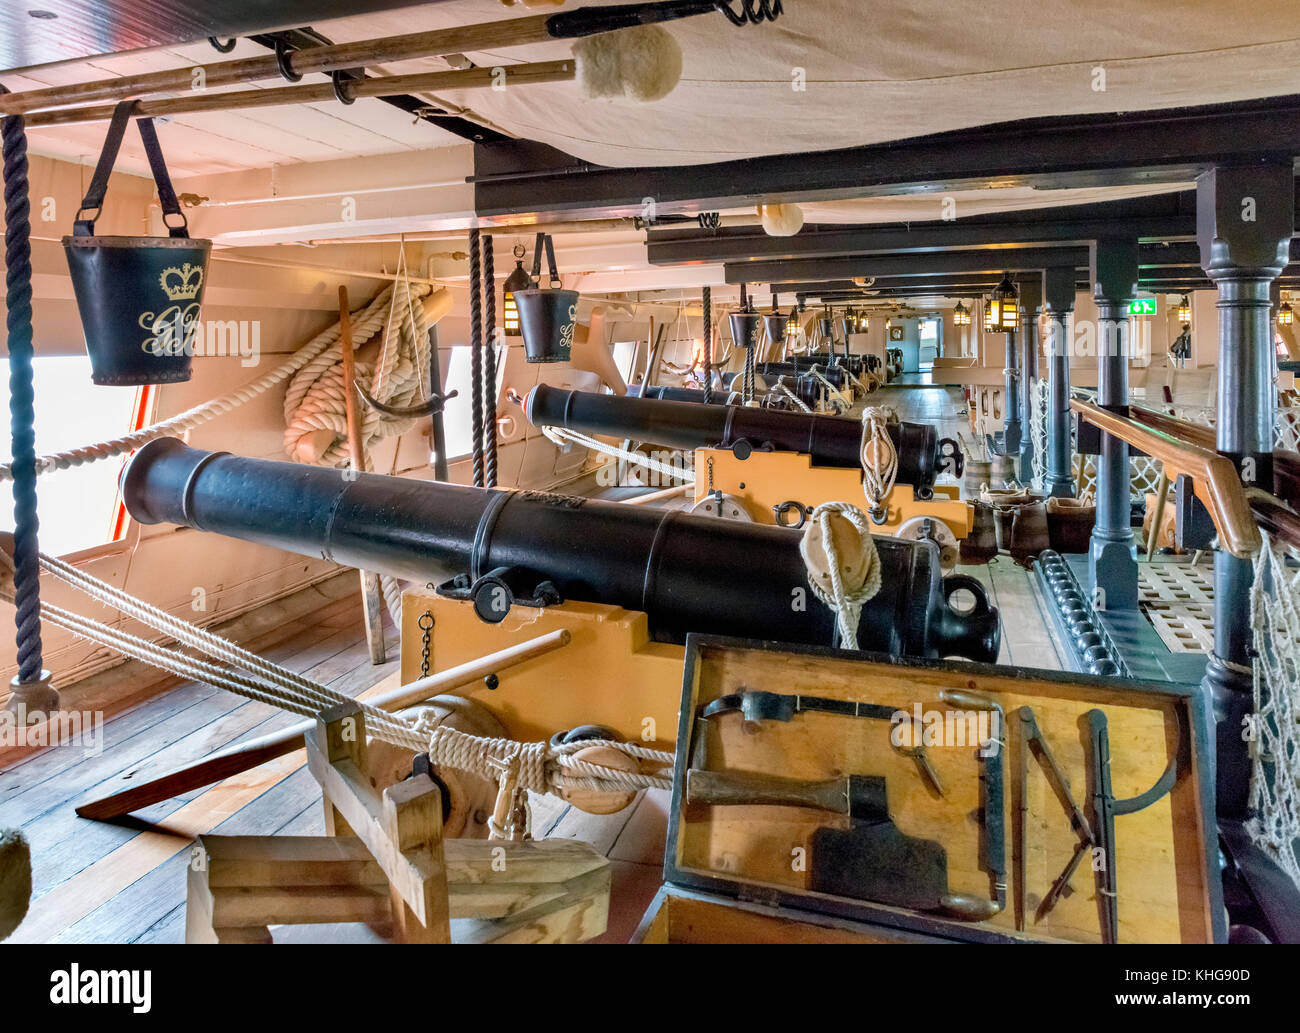 HMS Victory. Cannon on the gundeck of the Victory, Nelson's flagship at the Battle of Trafalgar, Portsmouth - Stock Image